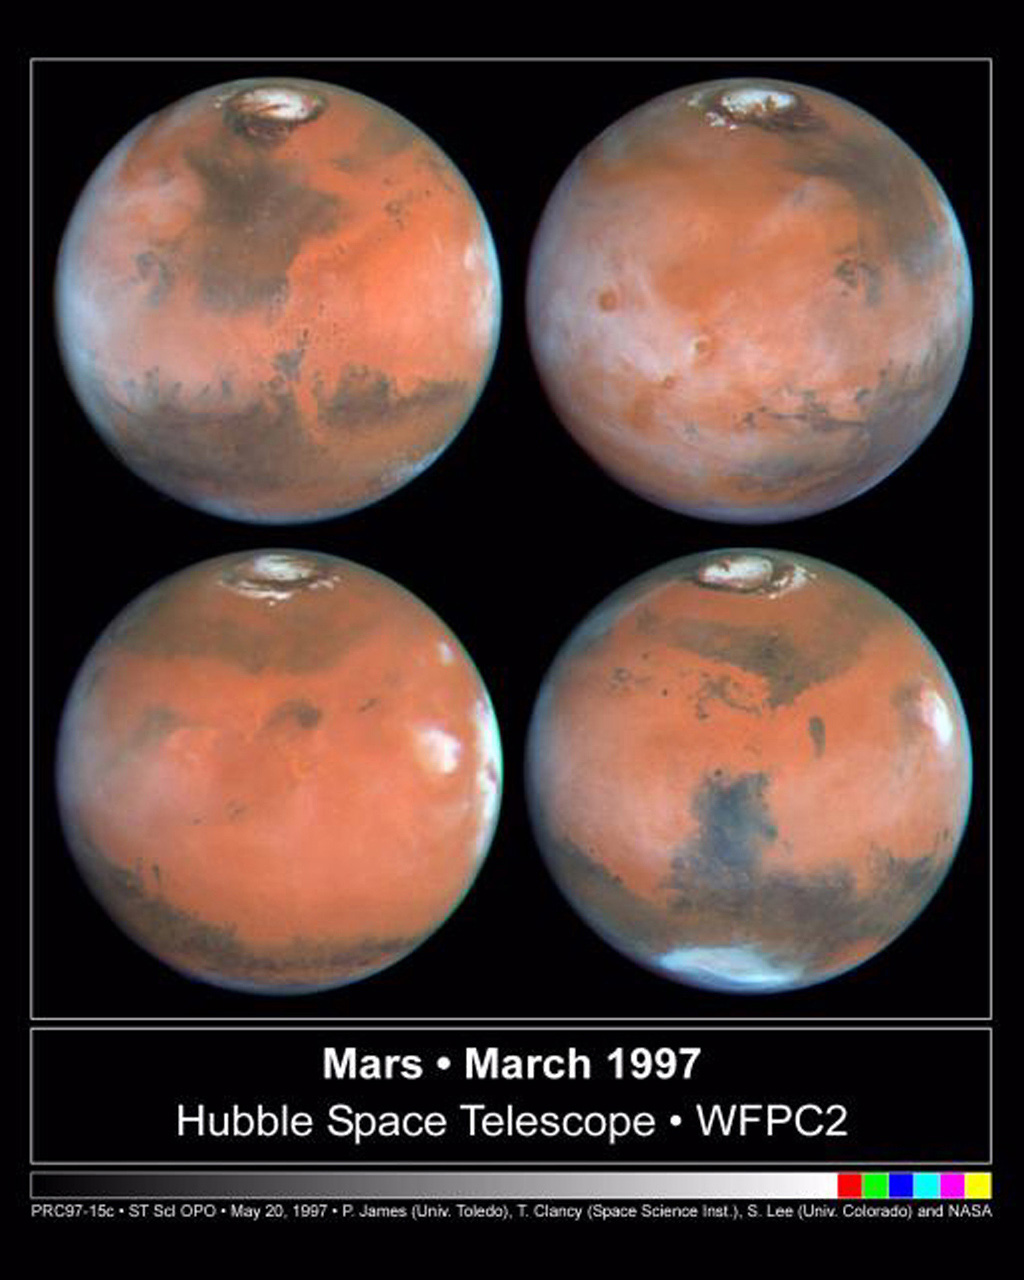 Four faces of Mars as seen on March 30, 1997 are presented in this montage of NASA Hubble Space Telescope images. Proceeding in the order upper-left, upper-right, lower-left, lower-right, Mars has rotated about ninety degrees.